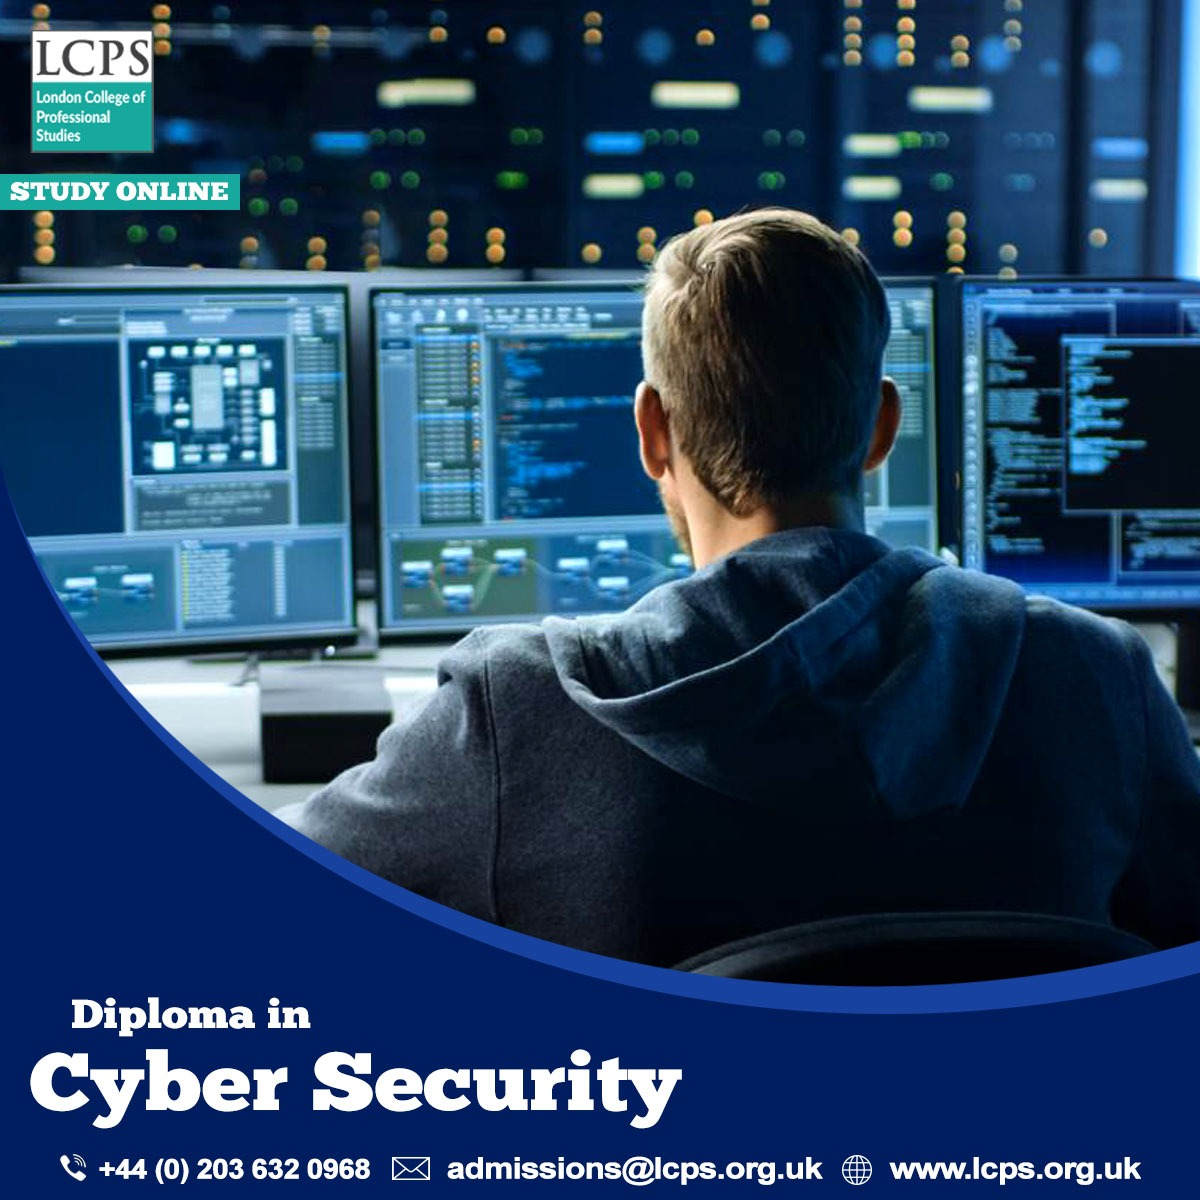 Cyber Security Diploma Studies